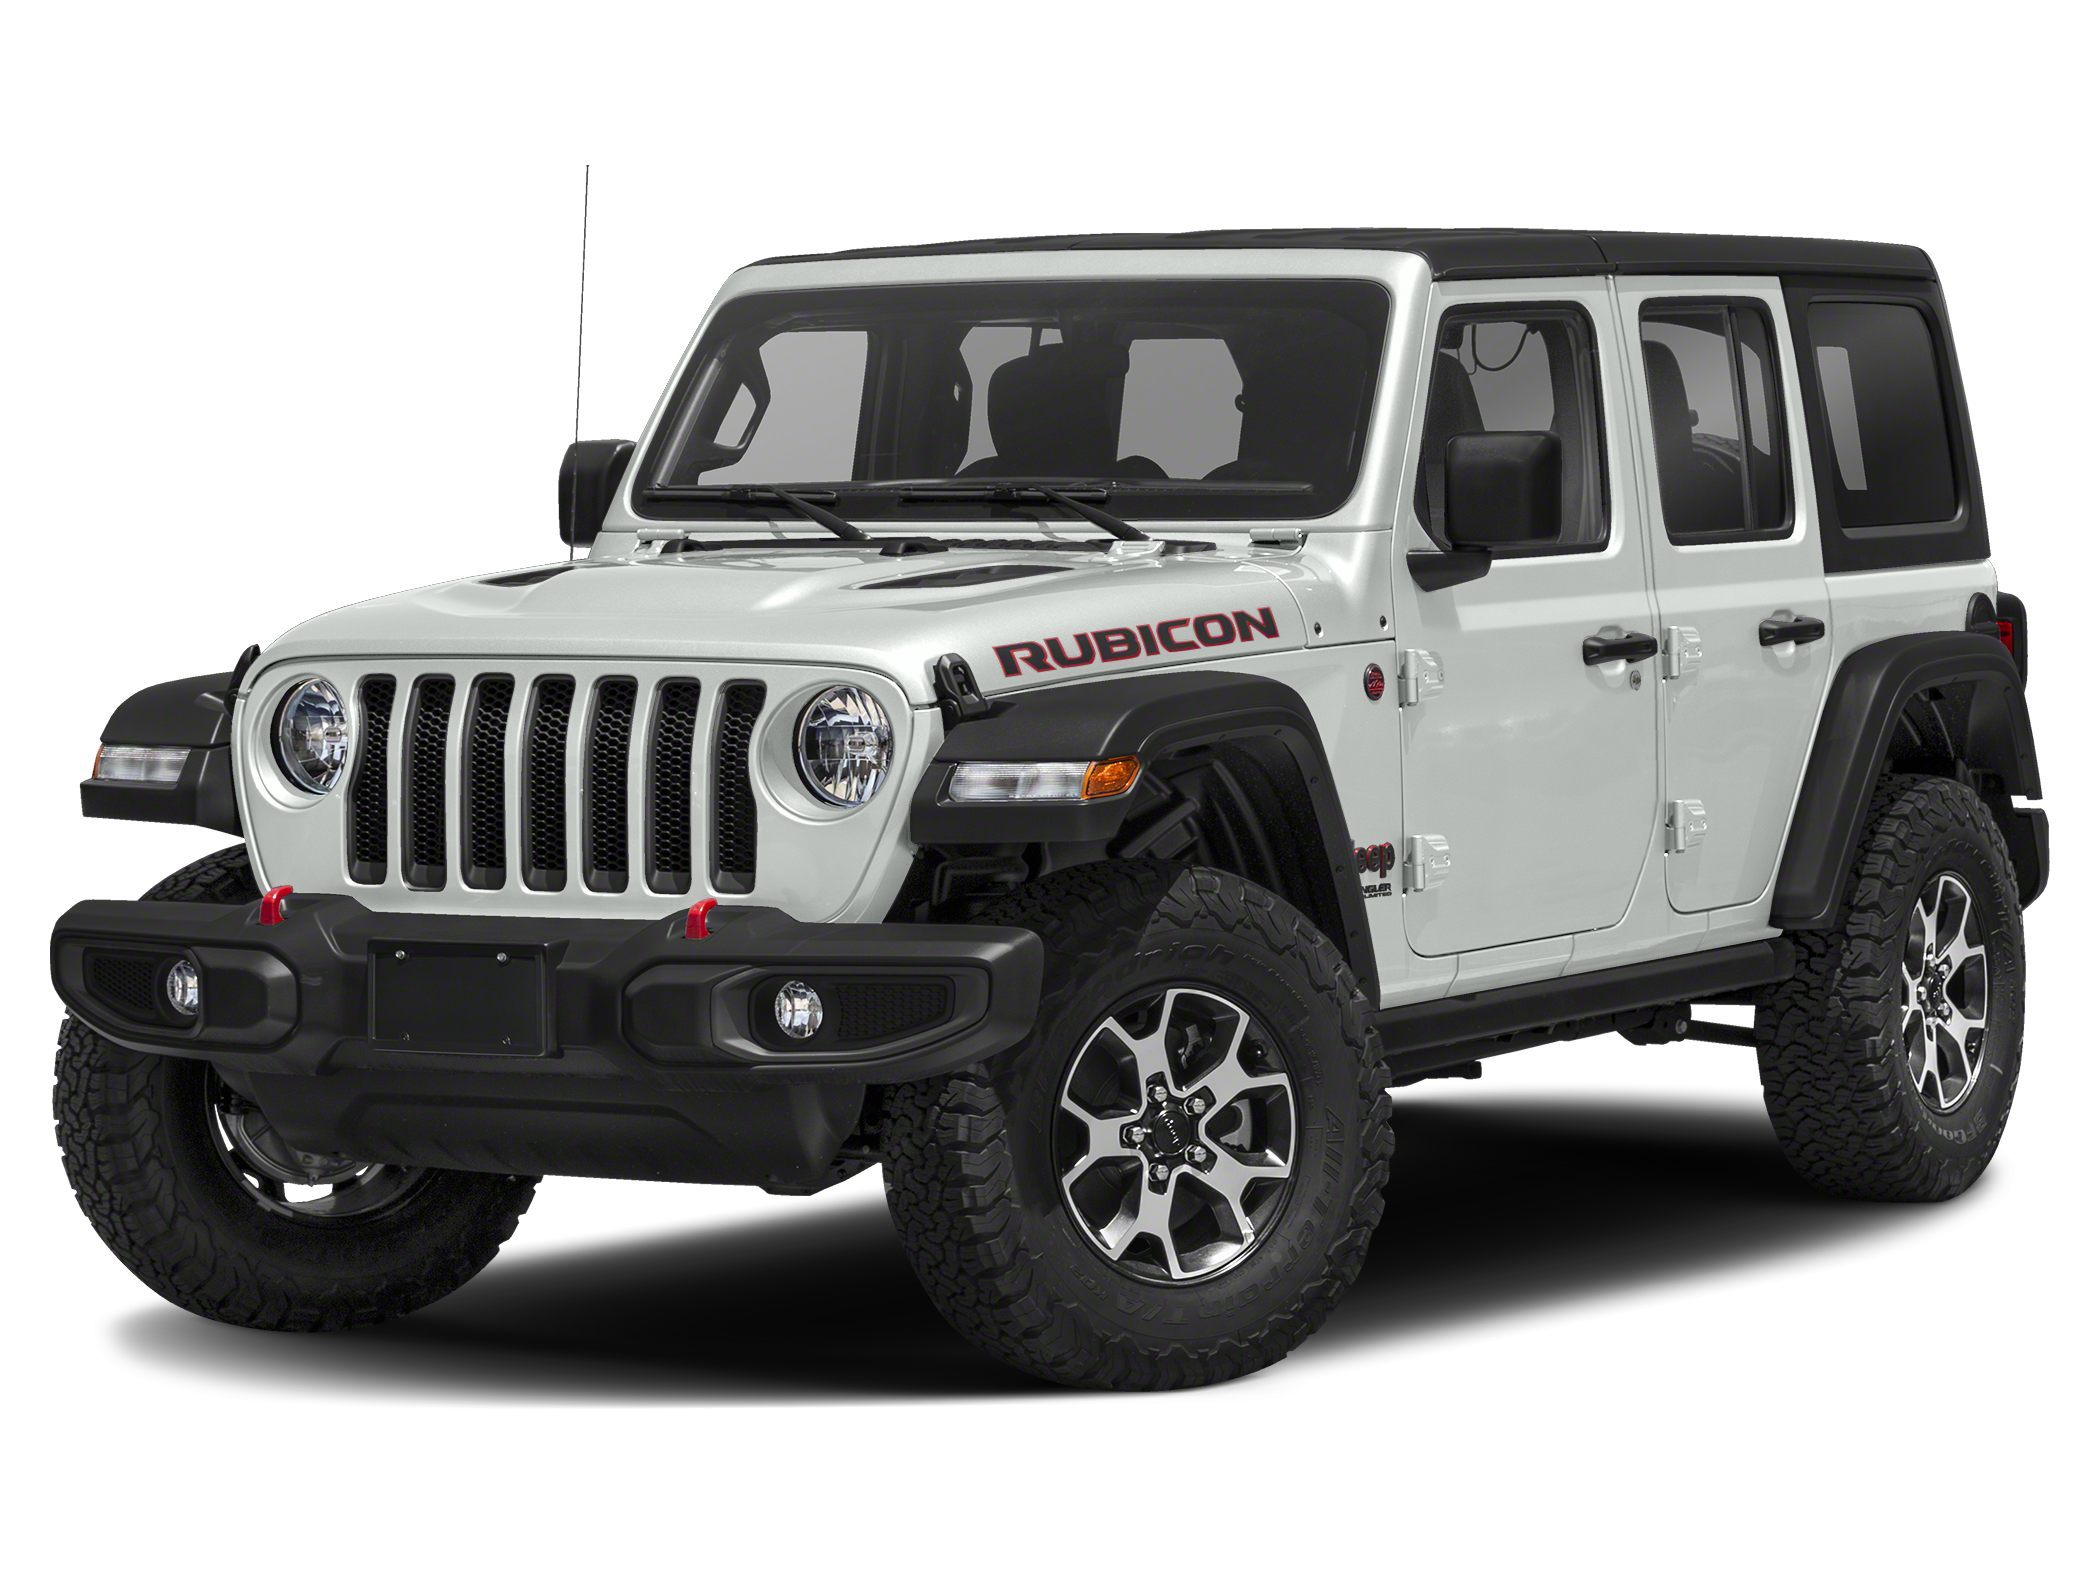 used 2020 Jeep Wrangler car, priced at $63,500